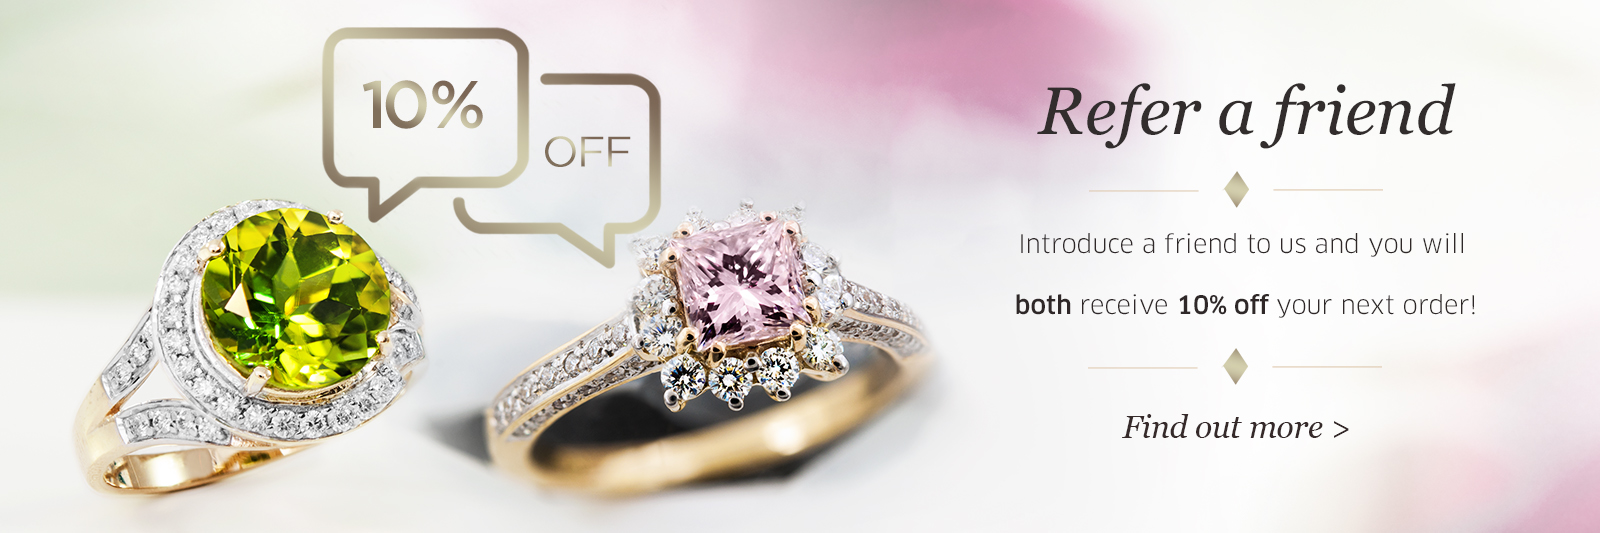 Refer a friend and save 10%!